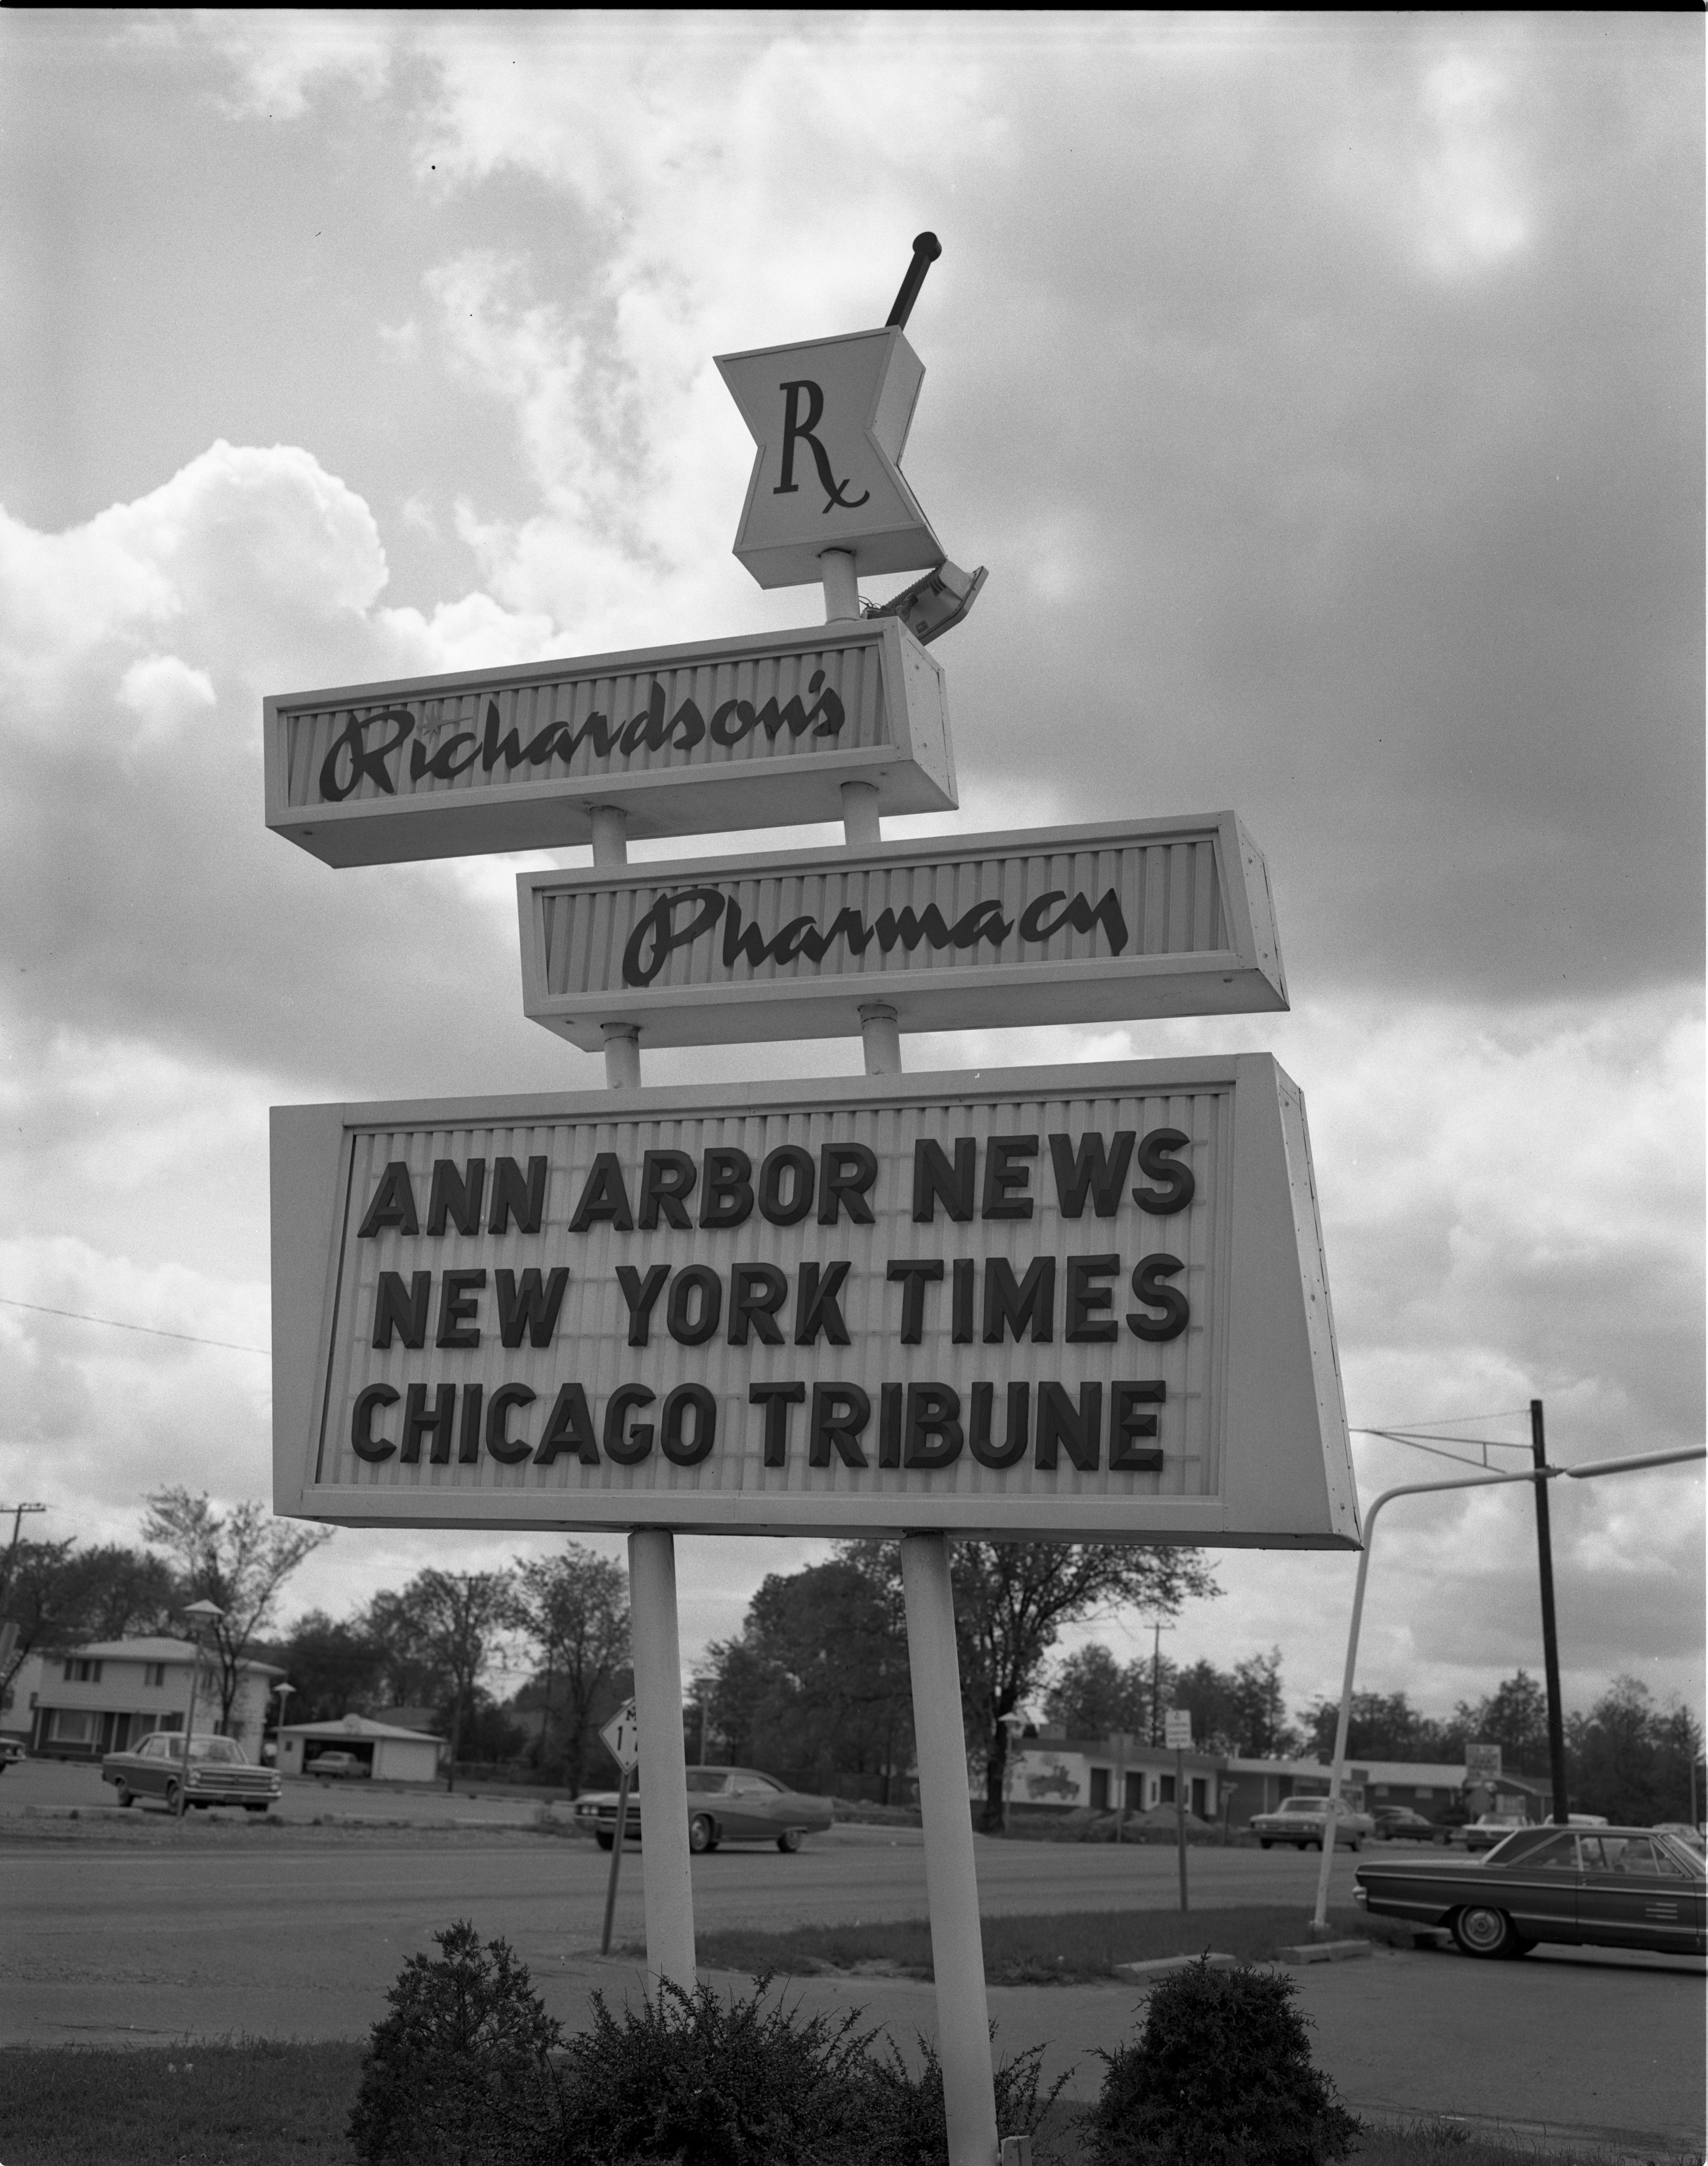 Richardson's Pharmacy Sign On Packard Road, May 1968 image